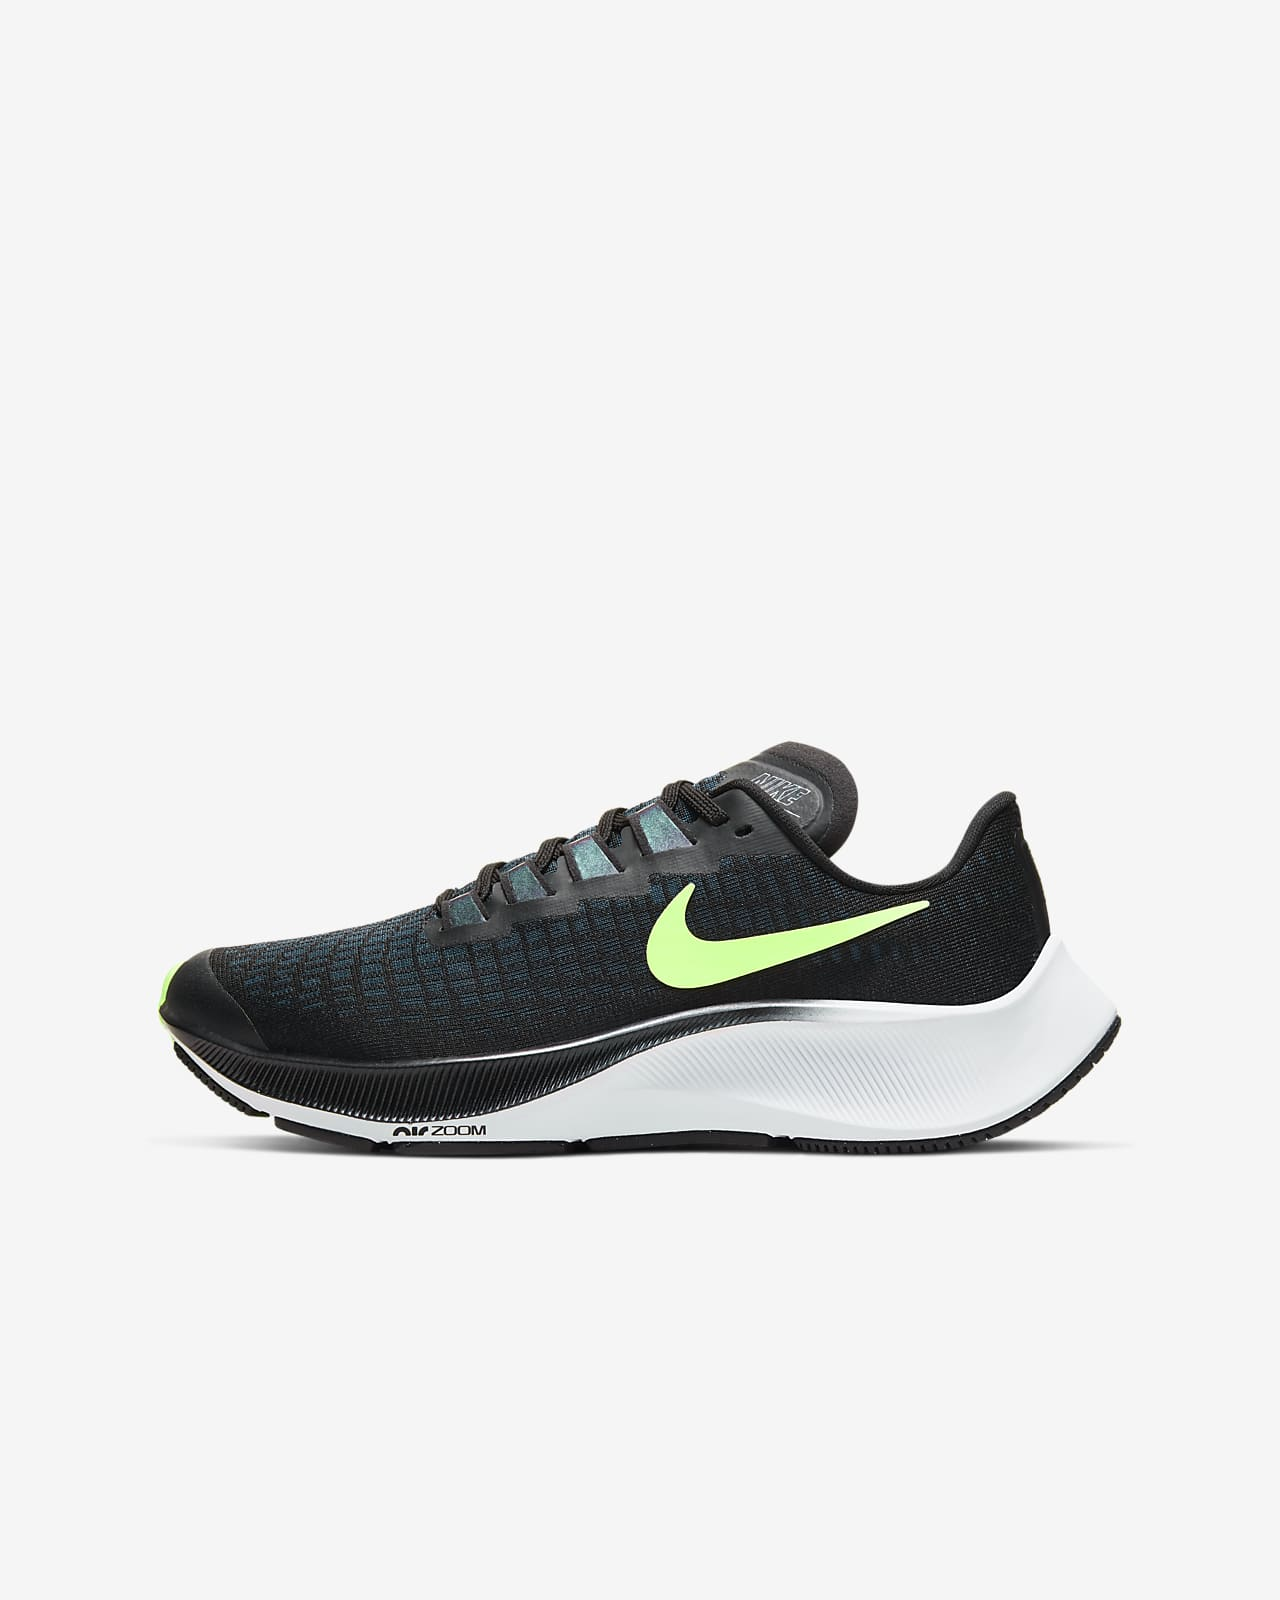 Sapatilhas de running Nike Air Zoom Pegasus 37 Júnior